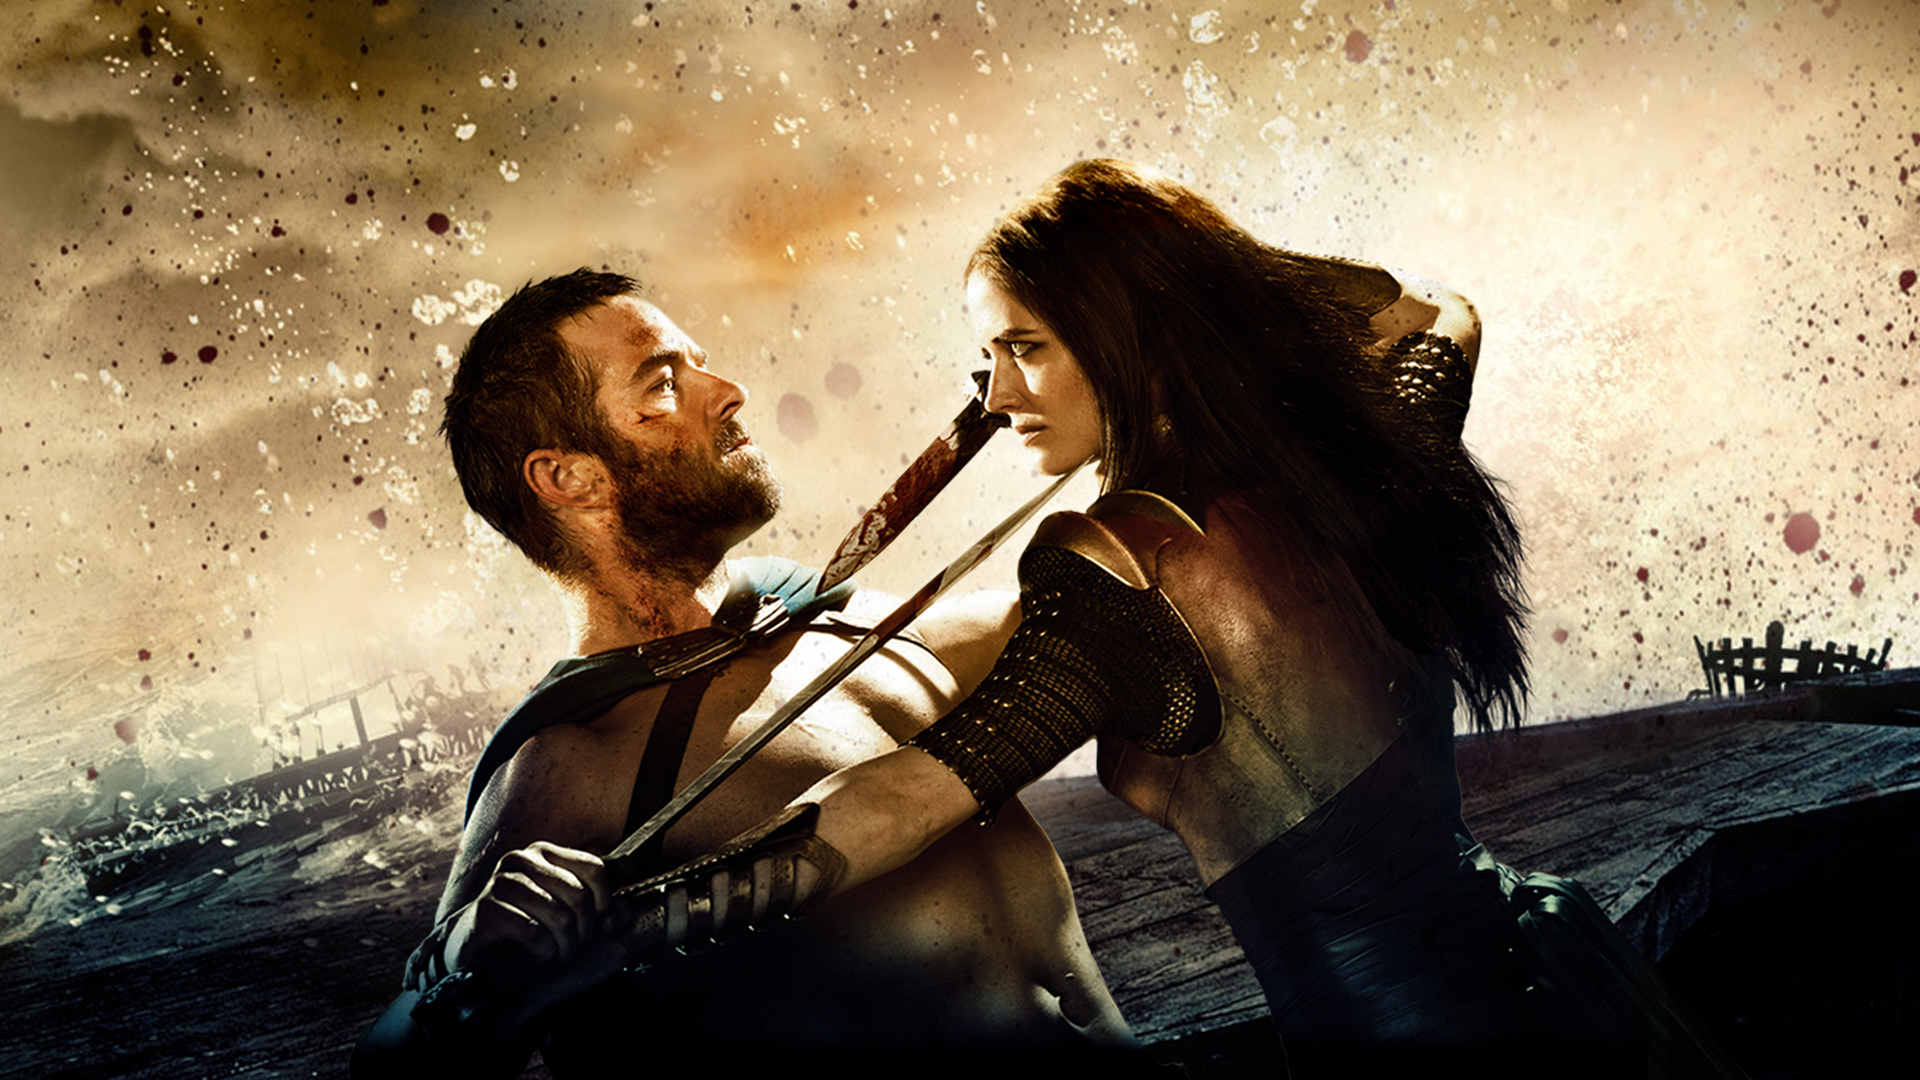 300: Rise of an Empire Wallpaper 1920x1080 by sachso74 on ...